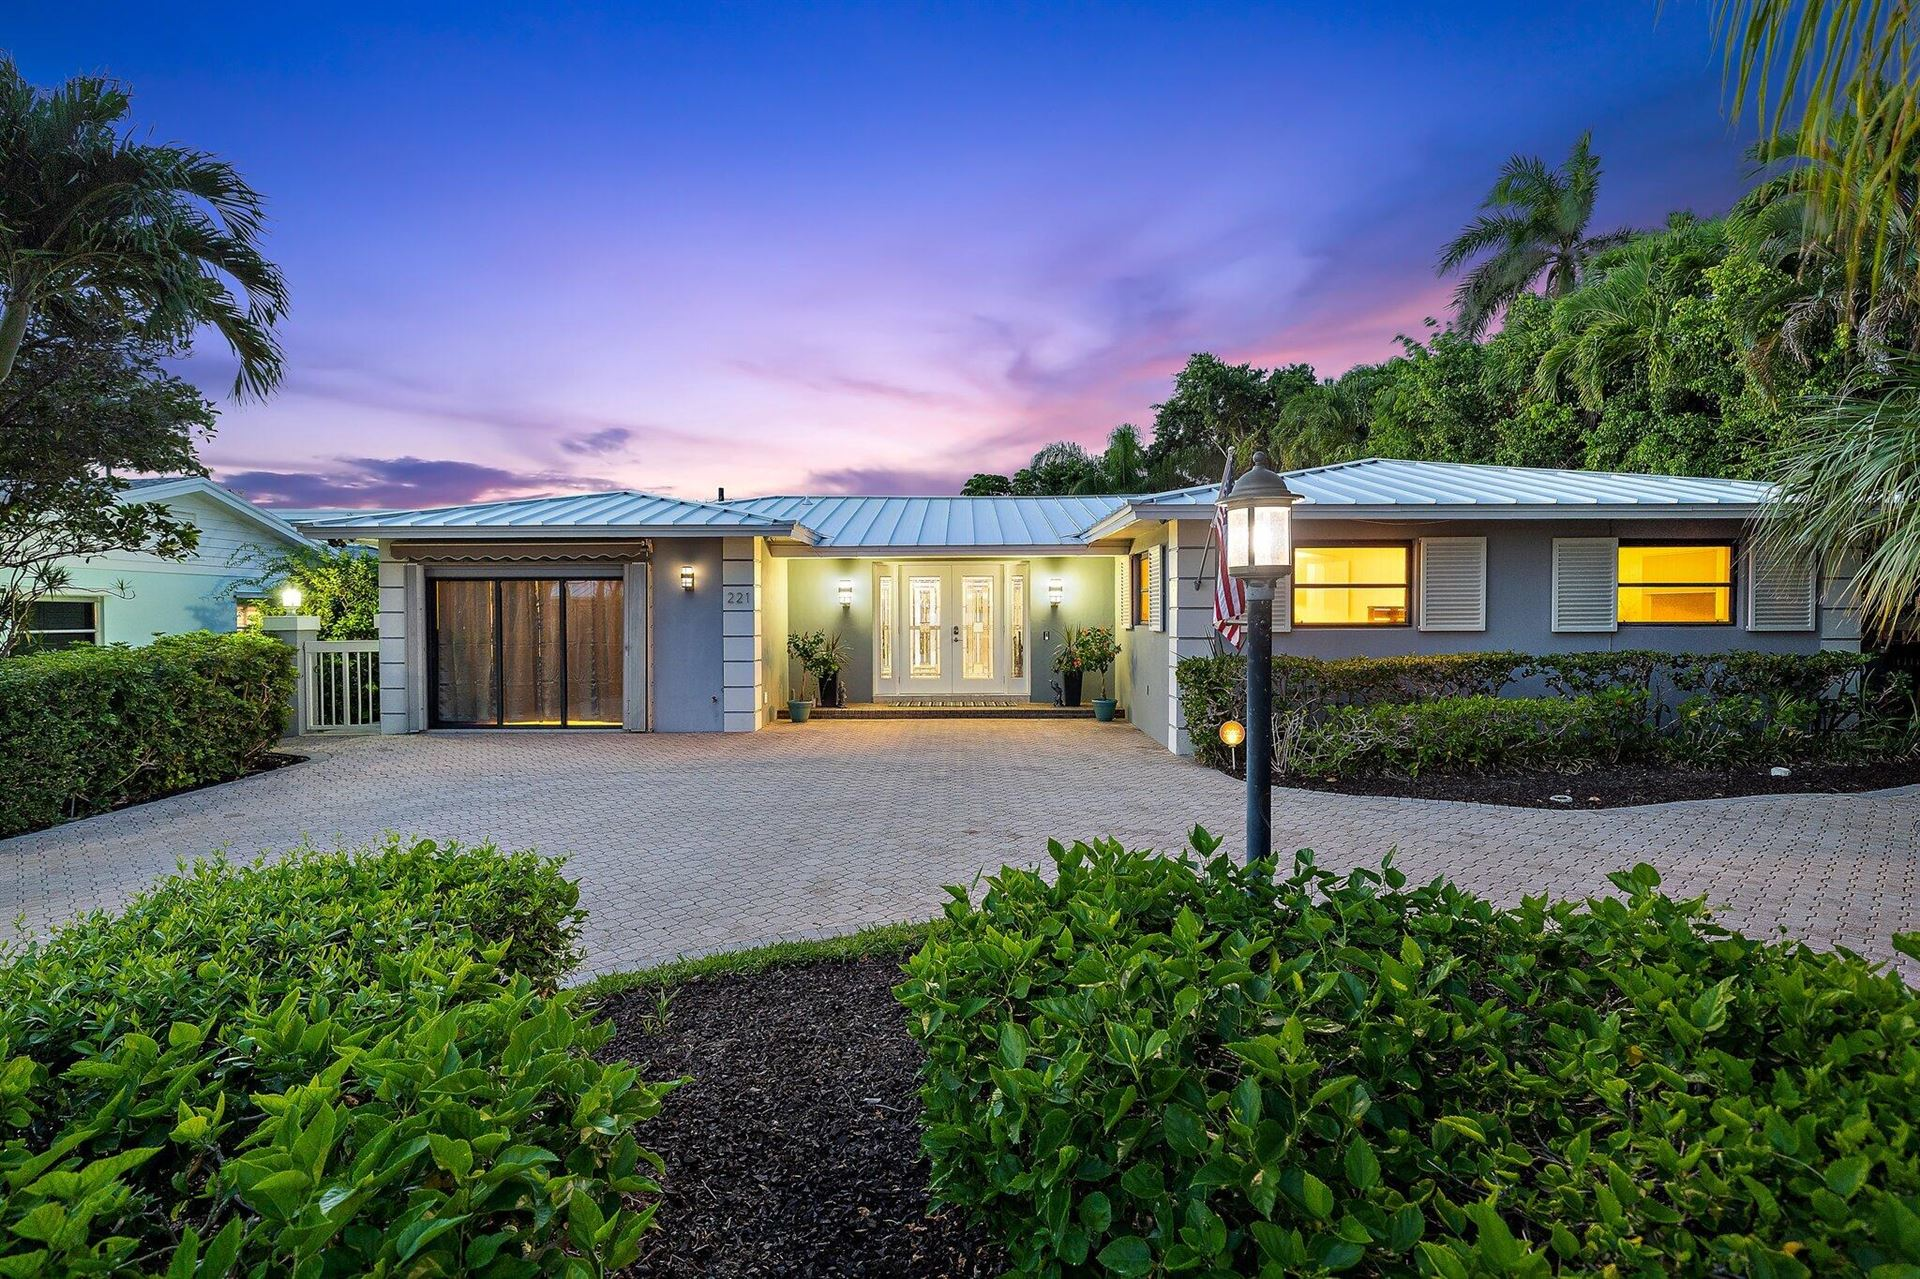 Photo of 221 Bamboo Road, Palm Beach Shores, FL 33404 (MLS # RX-10741221)